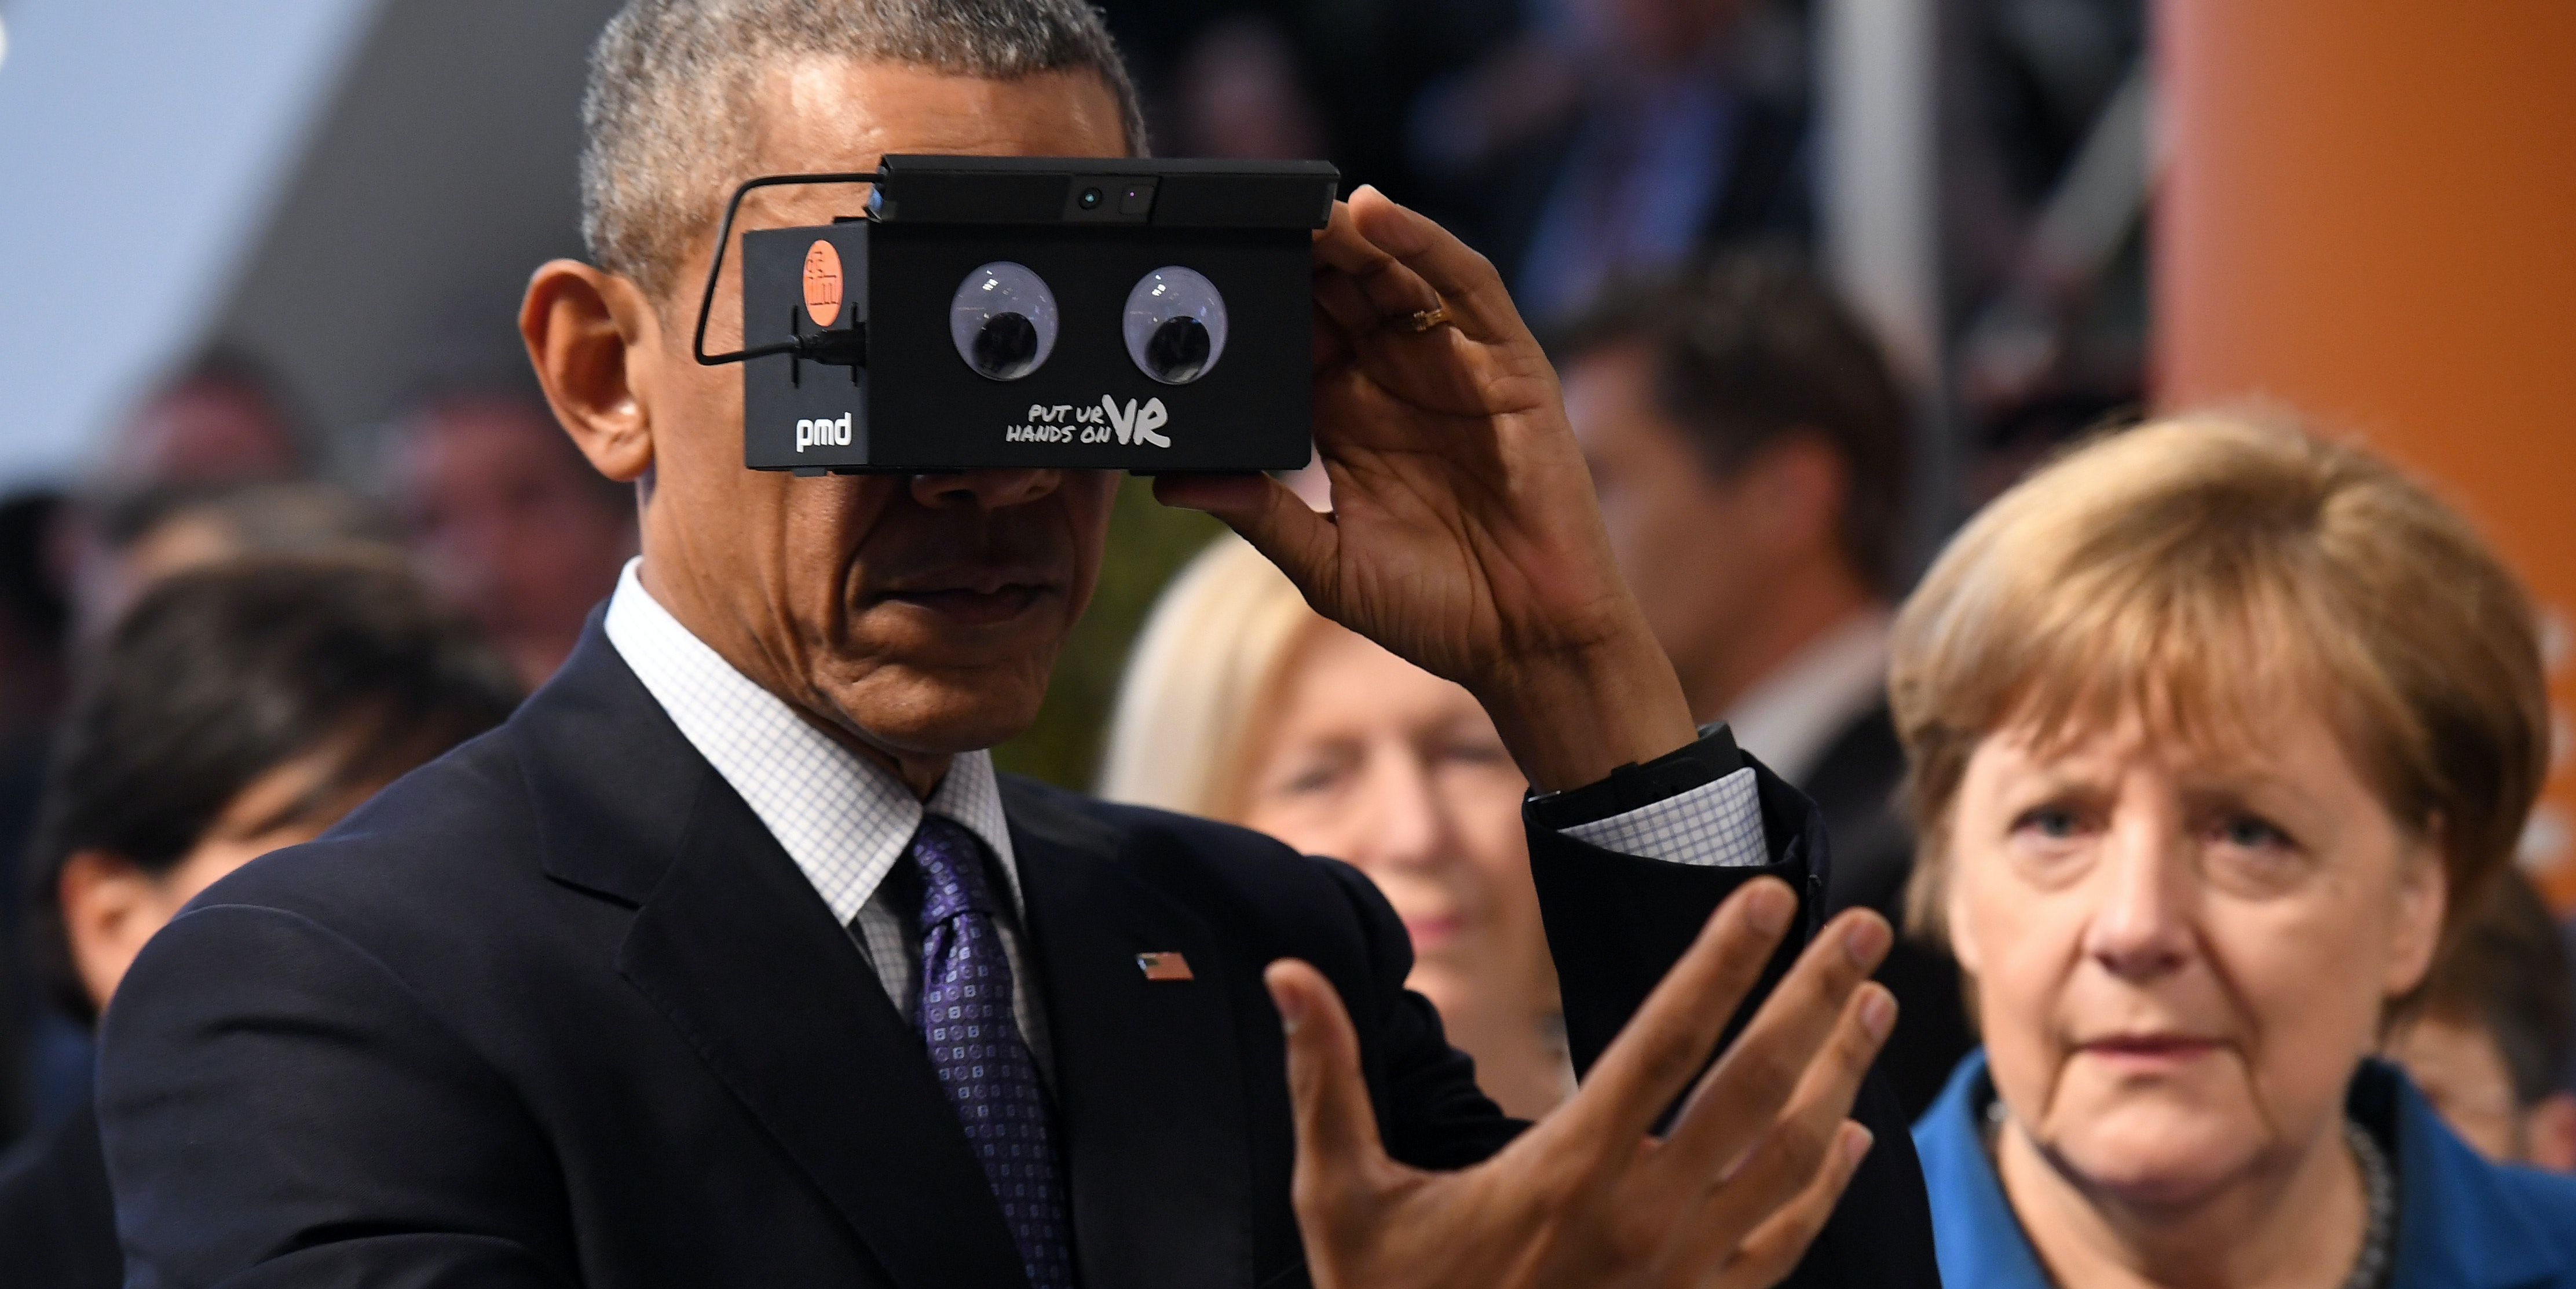 HANOVER, GERMANY - APRIL 25:  U.S. President Barack Obama and German Chancellor Angela Merkel test virtual reality glasses at the ifm electronics stand at the Hannover Messe industrial trade fair on April 25, 2016 in Hanover, Germany. This is likely Obama's last trip to Germany as U.S. president. The Hannover Messe is the world's largest industrial trade fair.  (Photo by Alexander Koerner/Getty Images)